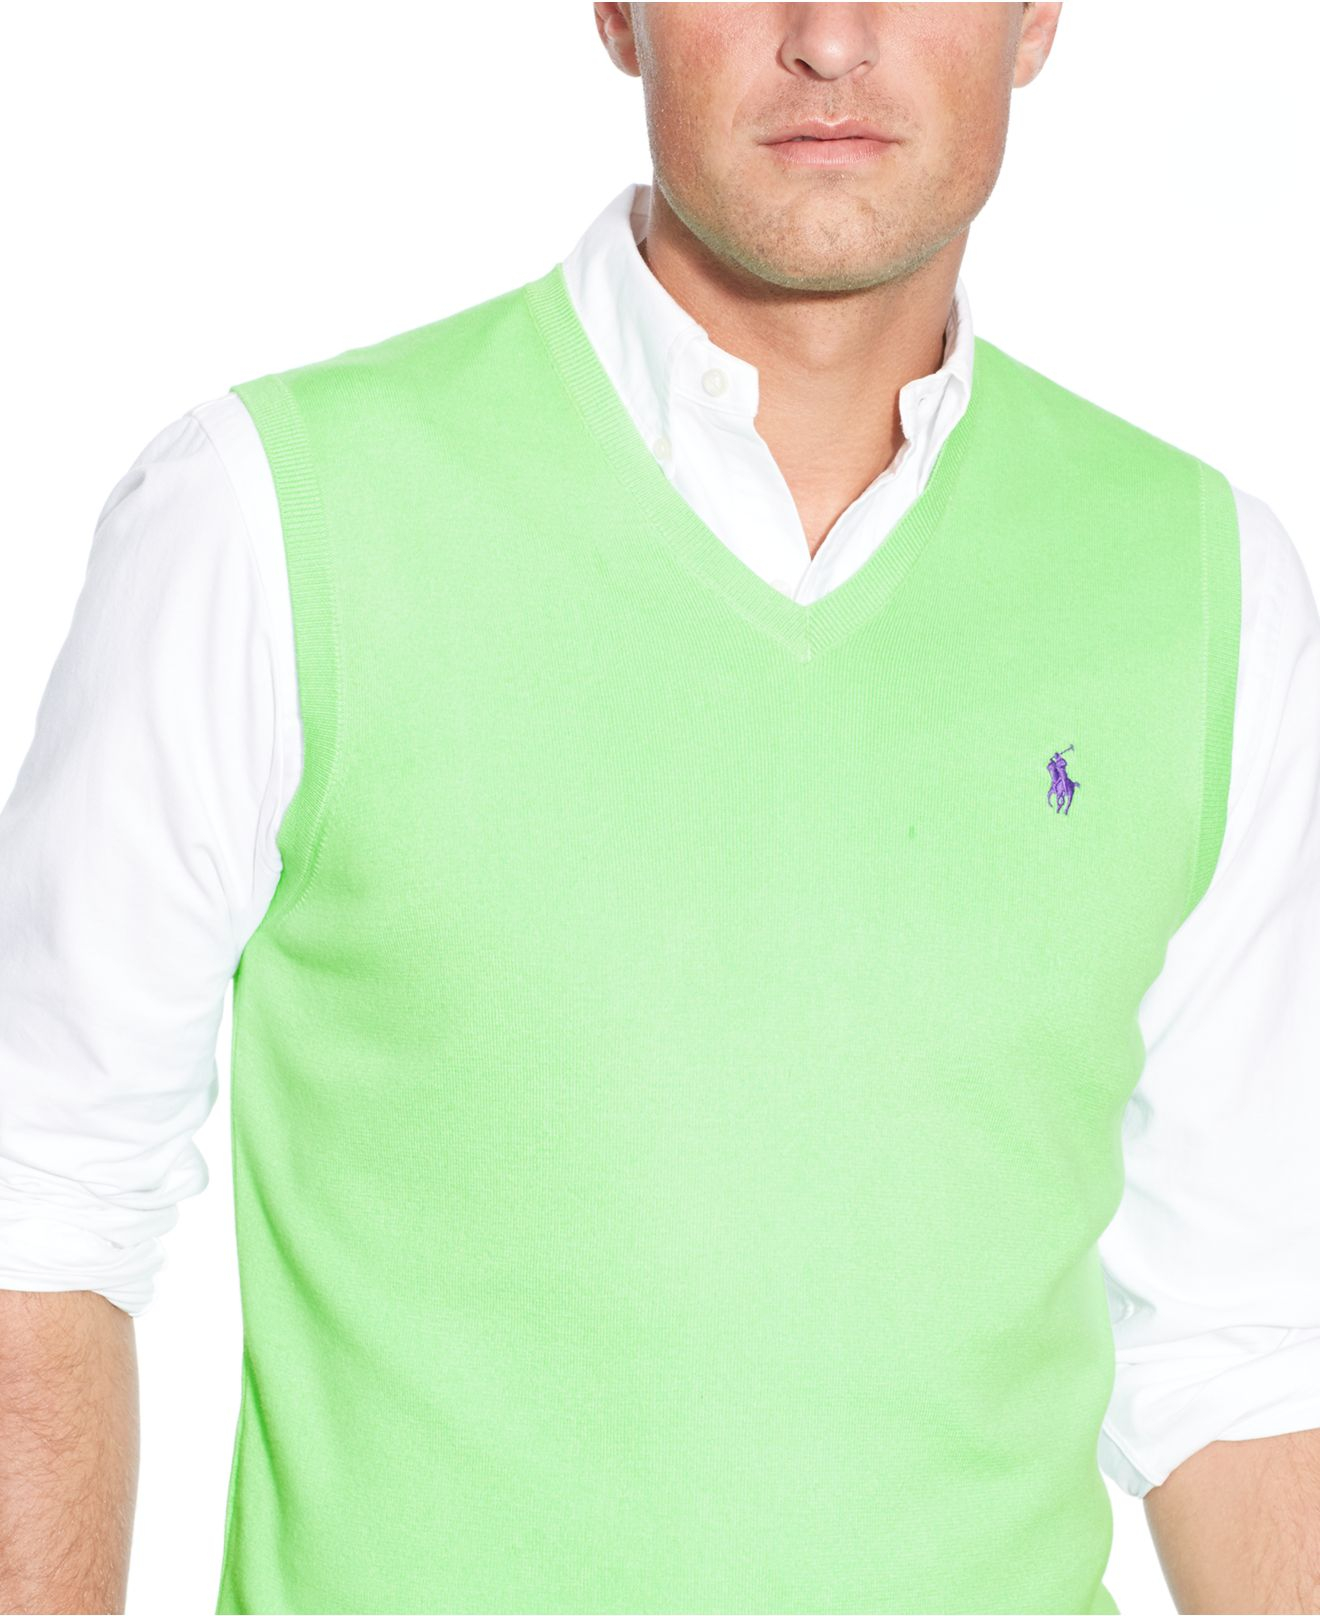 Polo ralph lauren Big And Tall Pima Cotton V-Neck Sweater Vest in ...